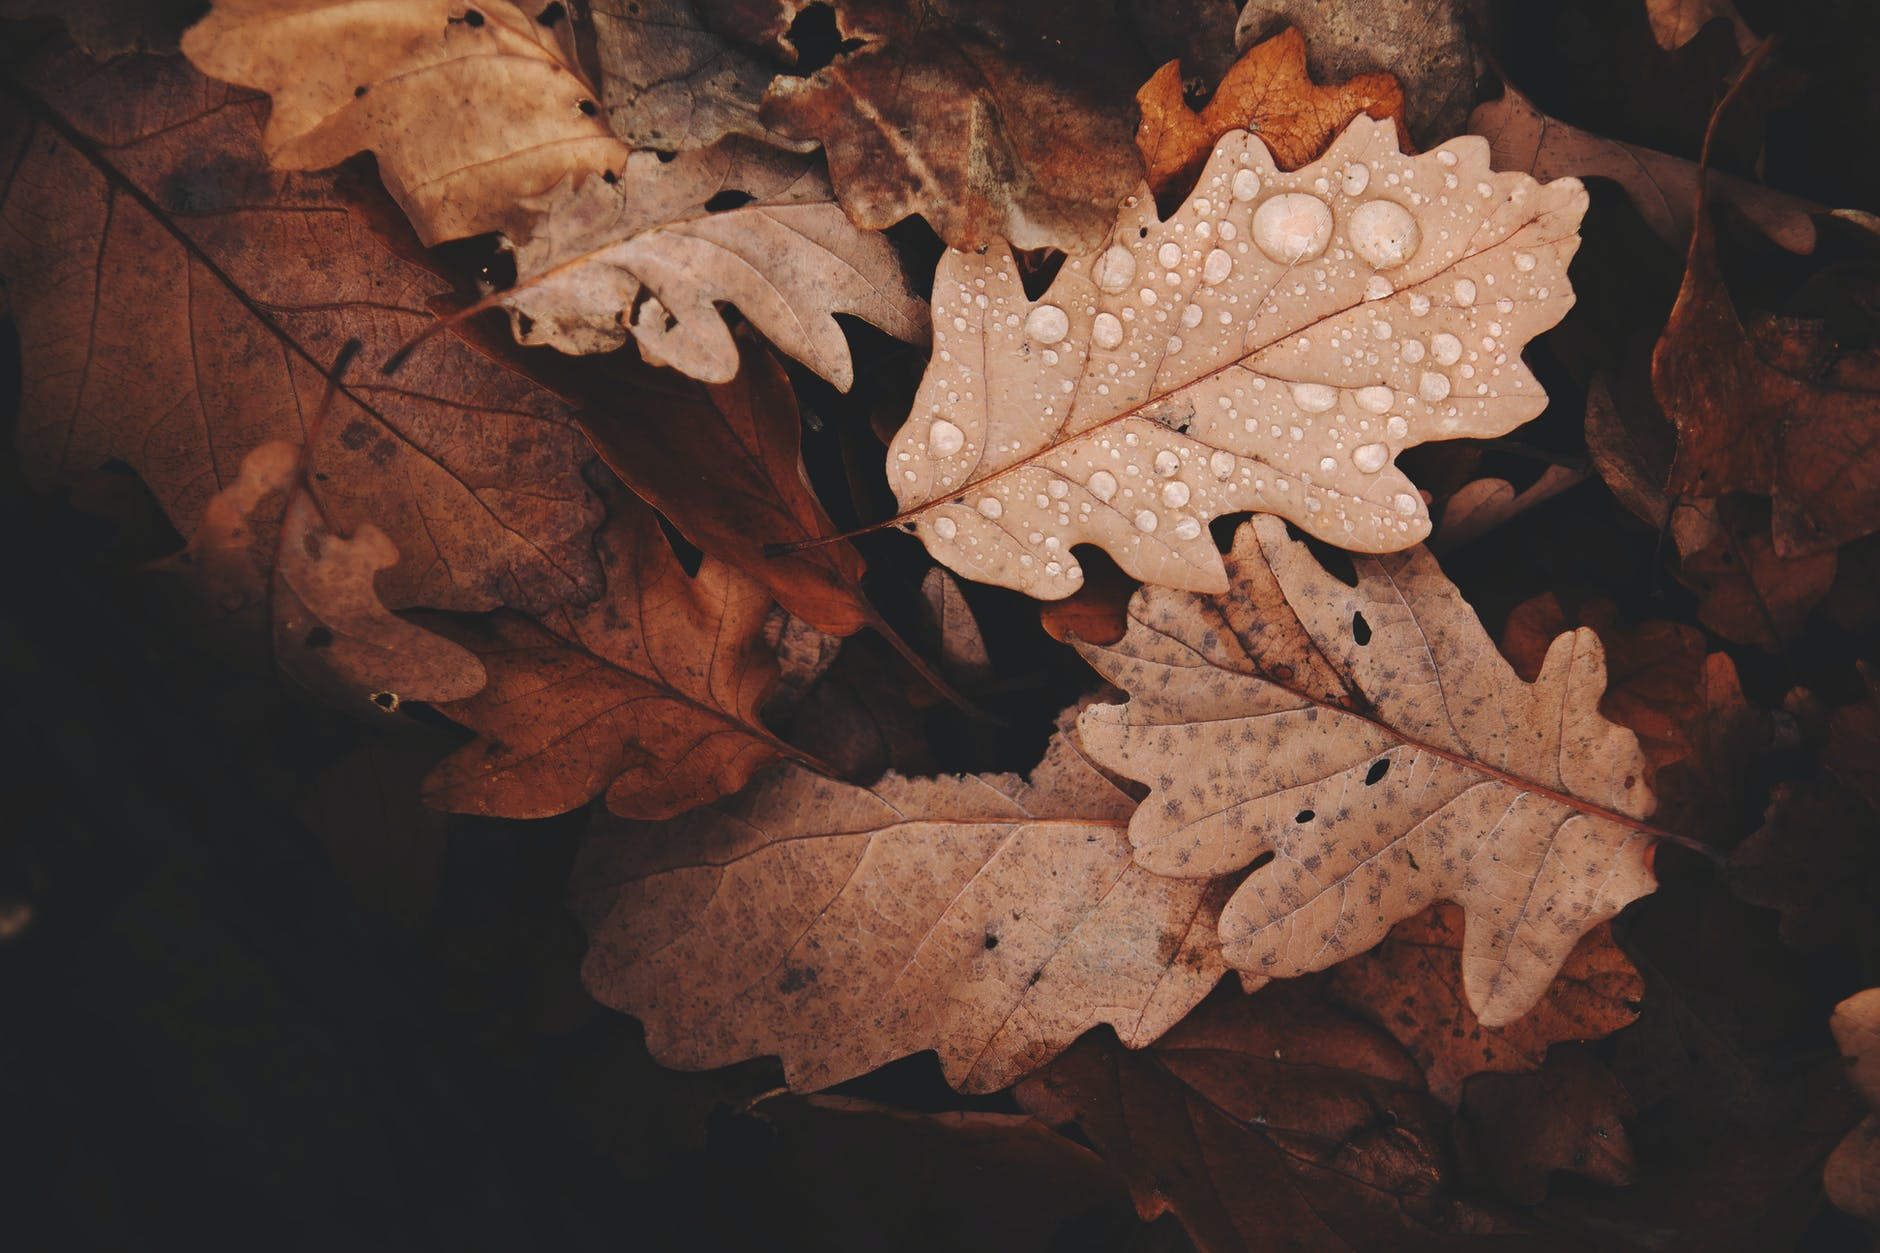 withered leaves photo Regenspiele